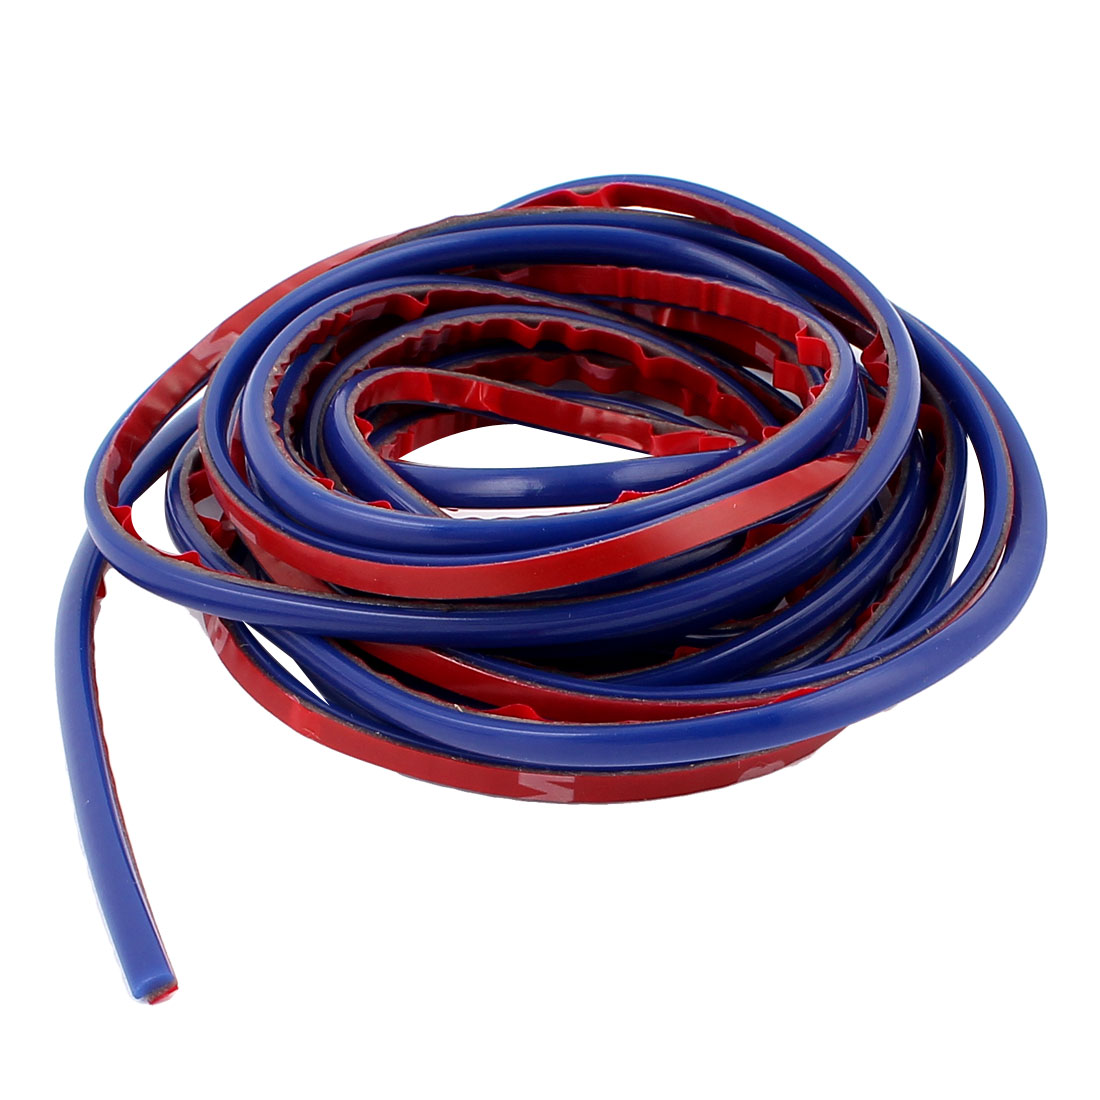 1.8M 6ft Blue Moulding Trim Car Door Edge Guard Strip Protector